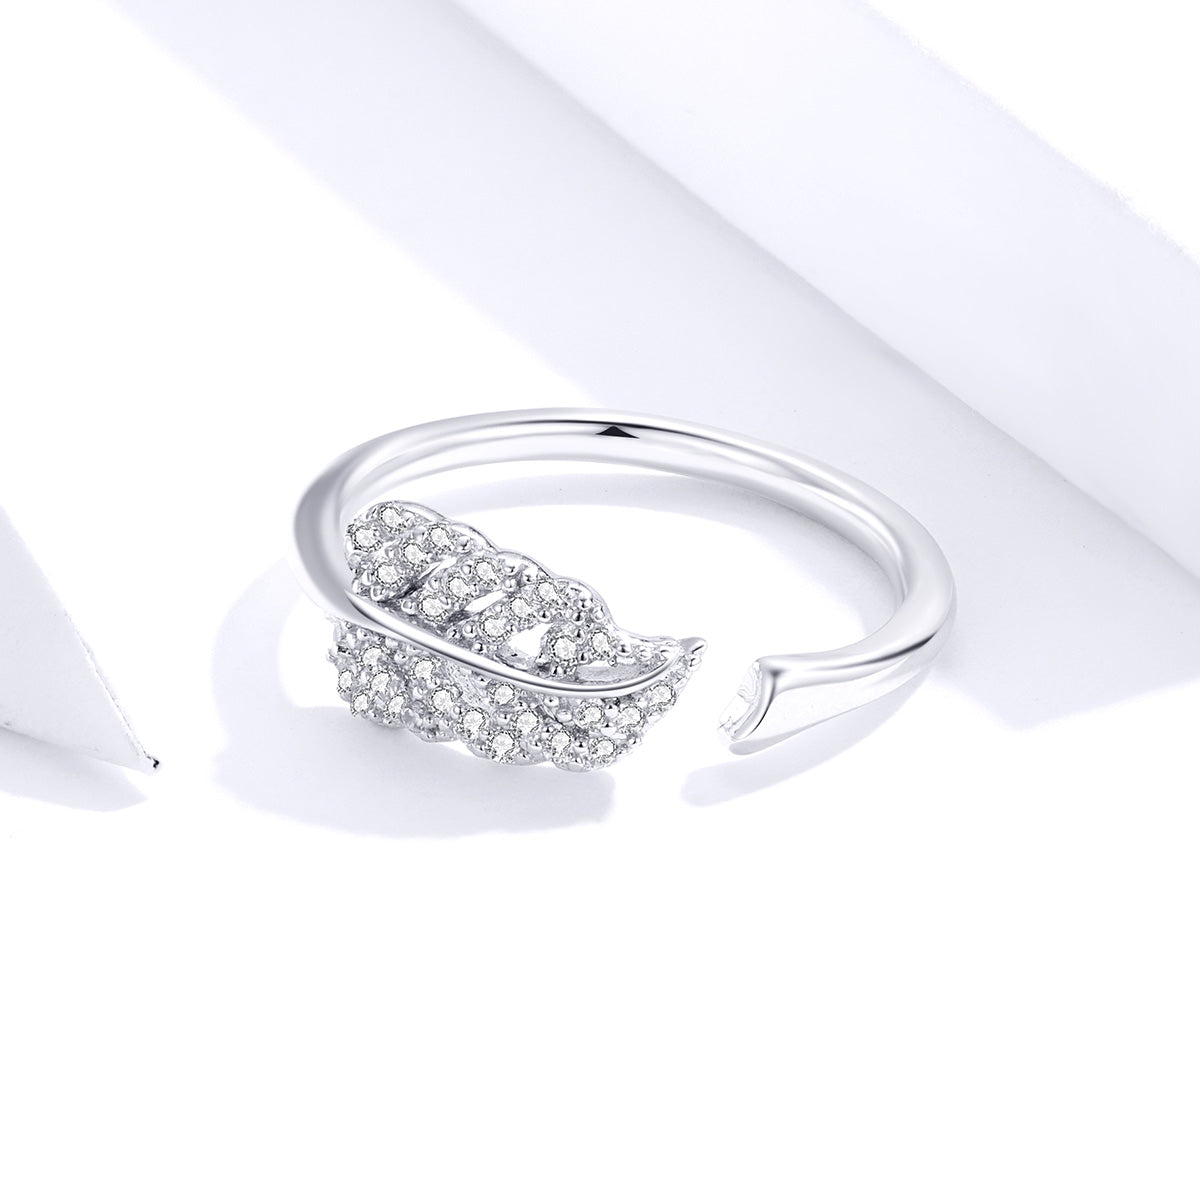 S925 sterling silver feather ring white gold plated zircon ring